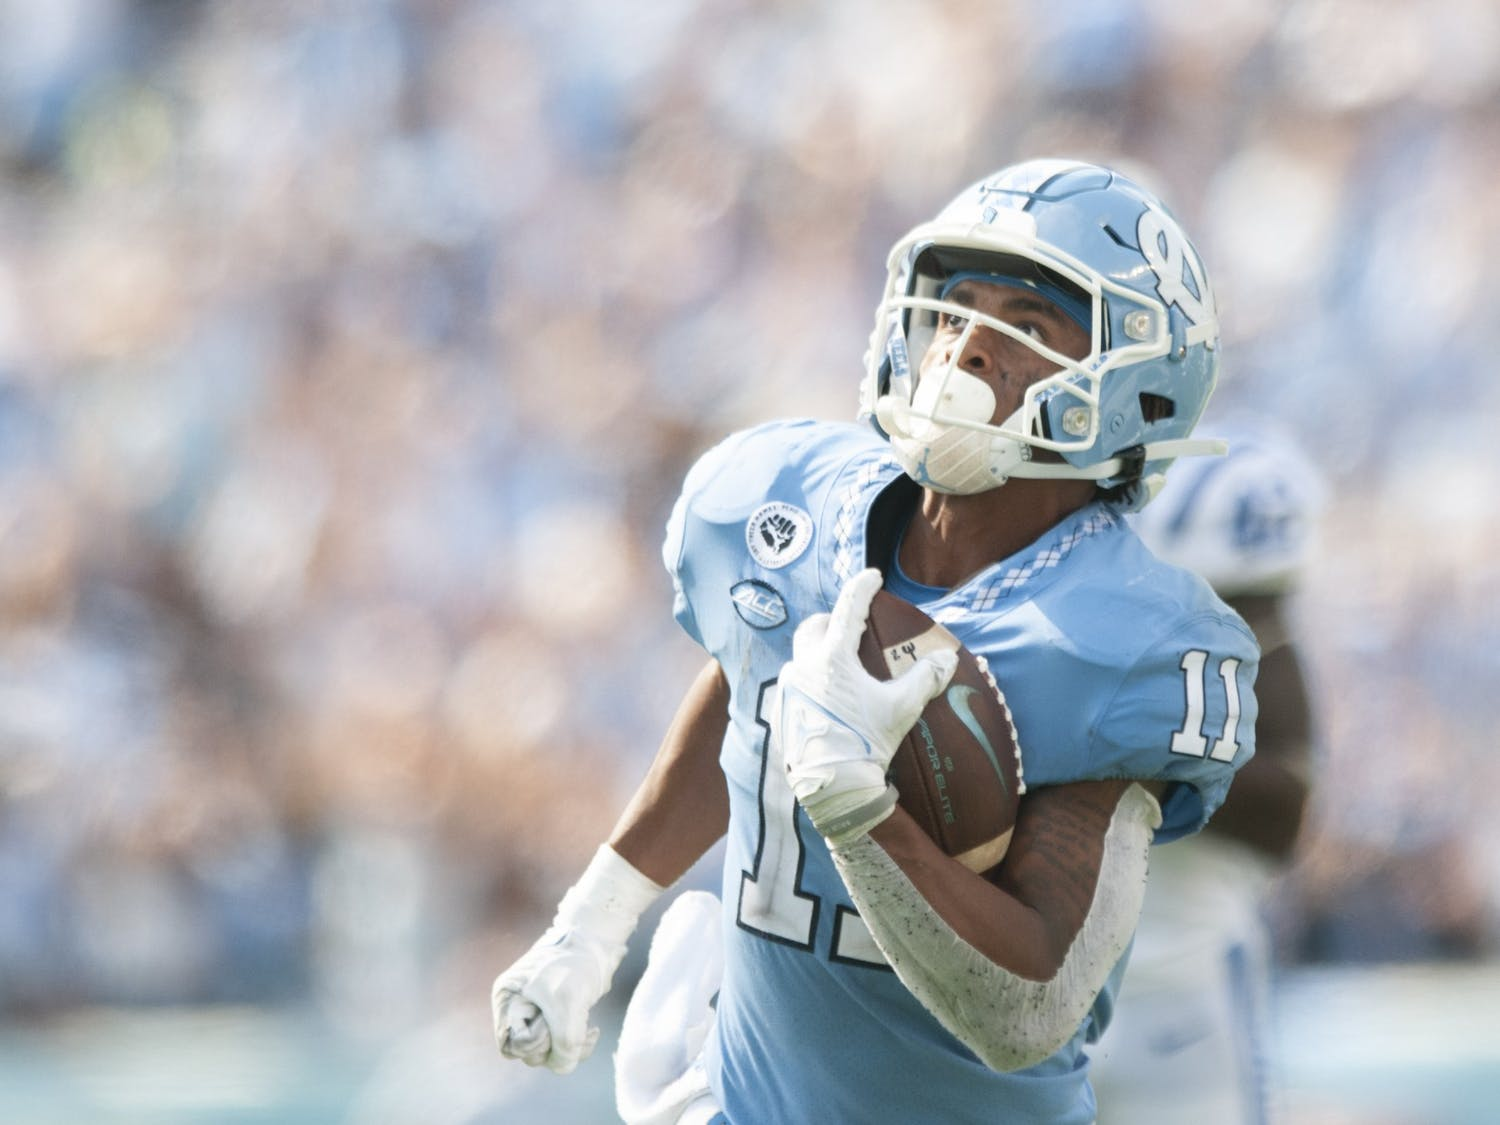 Sophomore wide receiver Josh Downs (11) scores a touchdown after receiving 63-yard pass from quarterback Sam Howell (7). The Tar Heels defeated Duke 38-7 in Kenan Memorial Stadium on Oct. 2, 2021.